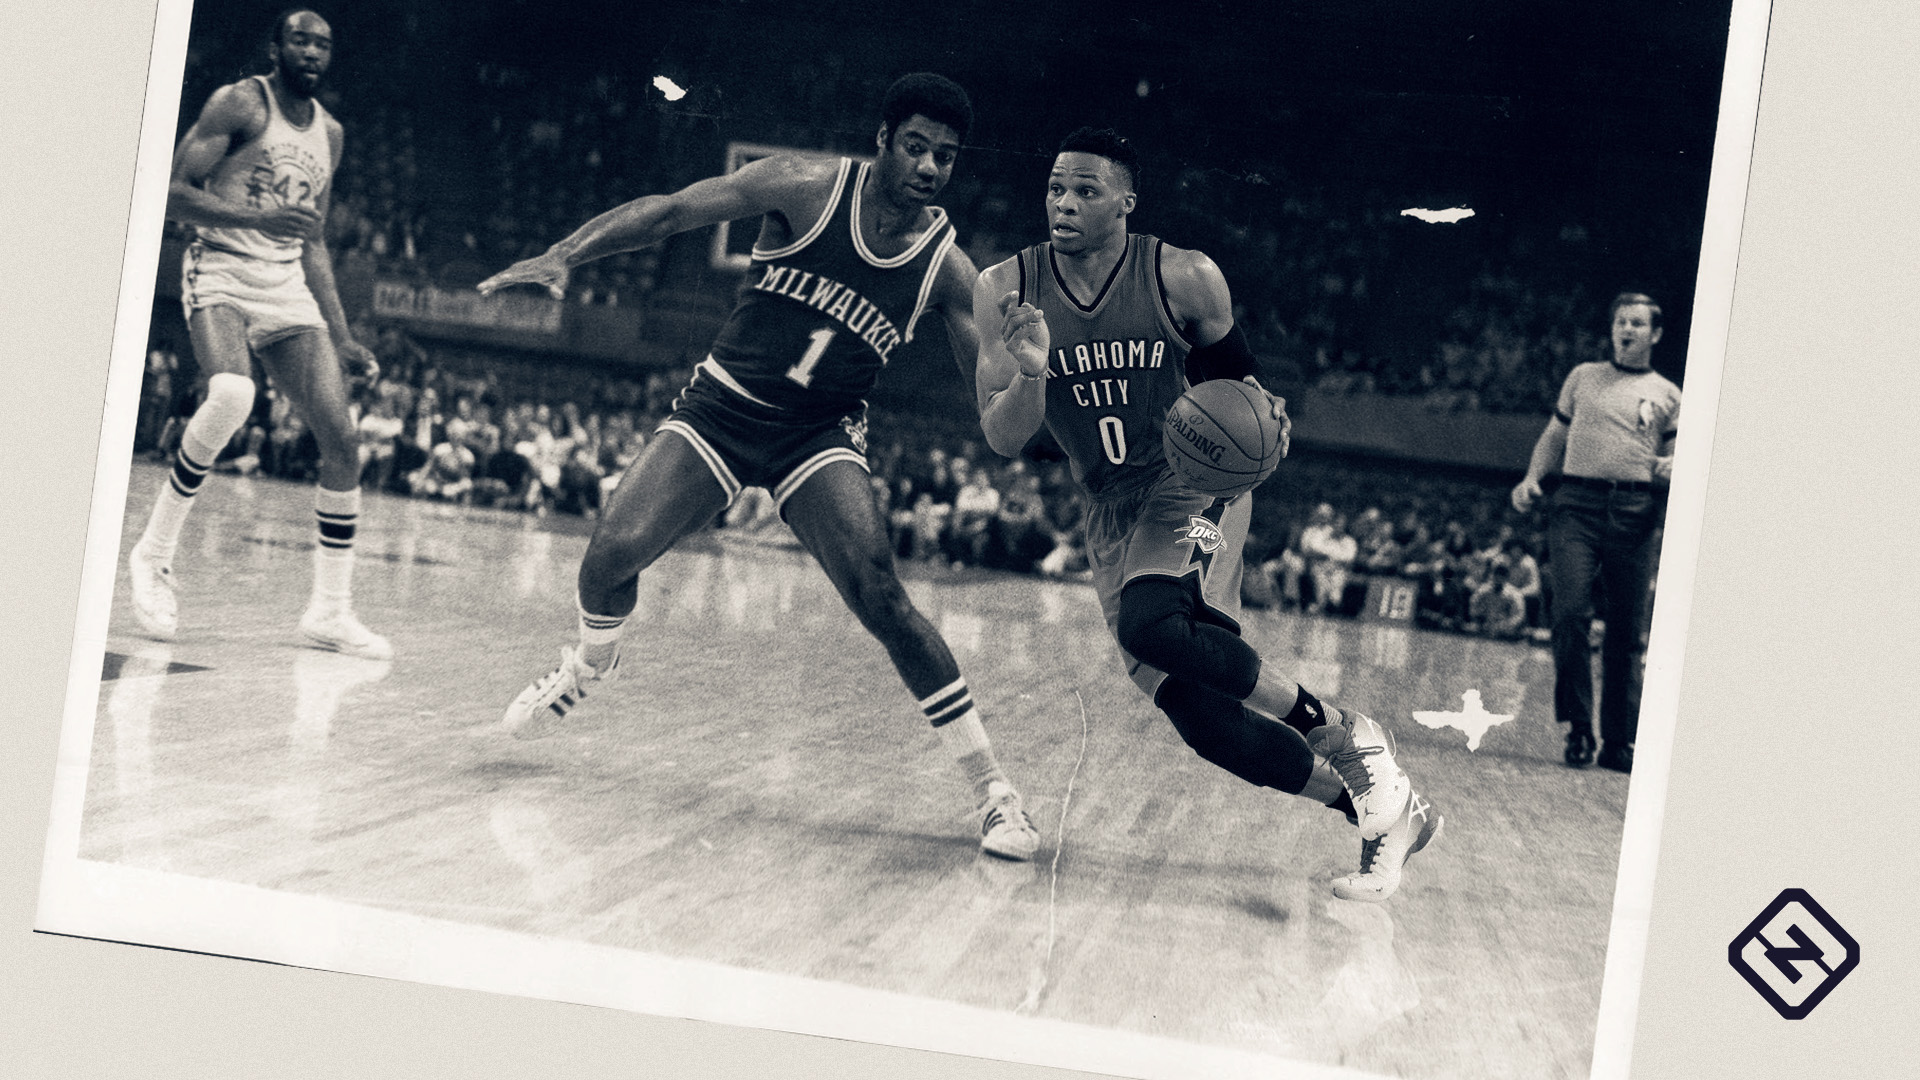 How Russell Westbrook pares to Oscar Robertson according to